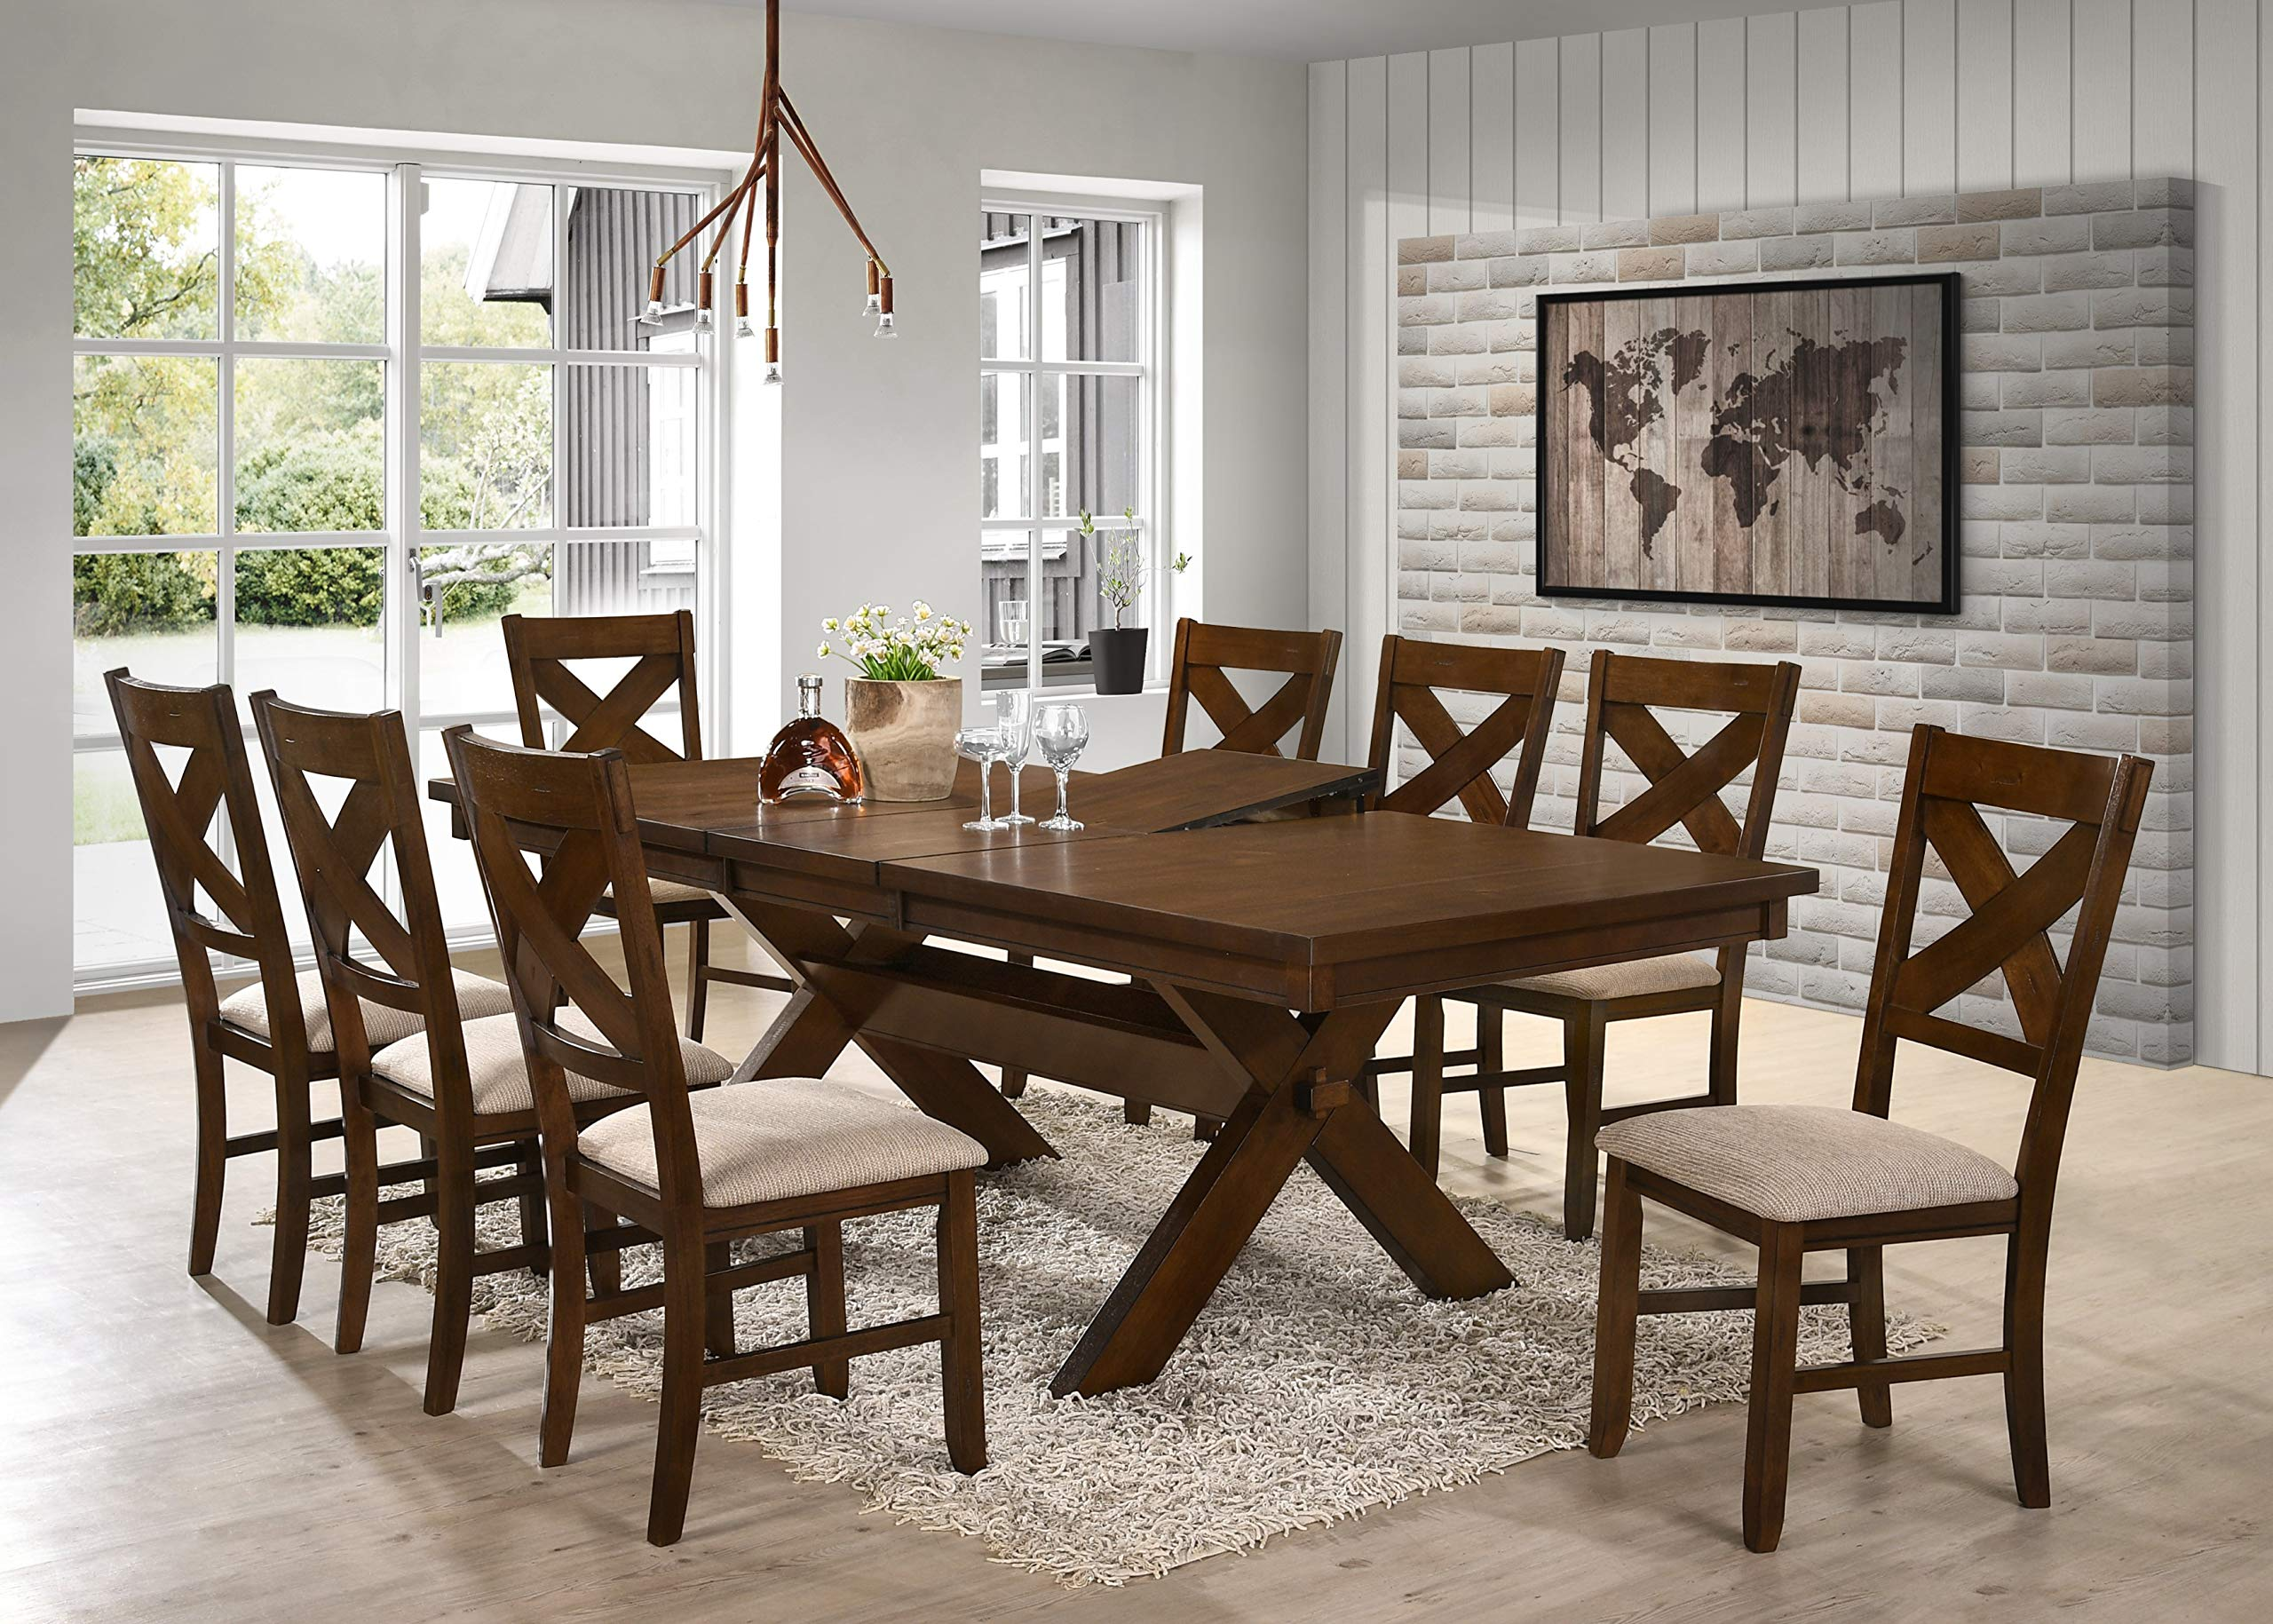 Roundhill Furniture Karven 9-Piece Solid Wood Dining Set with Table and 8 Chairs by Roundhill Furniture (Image #2)